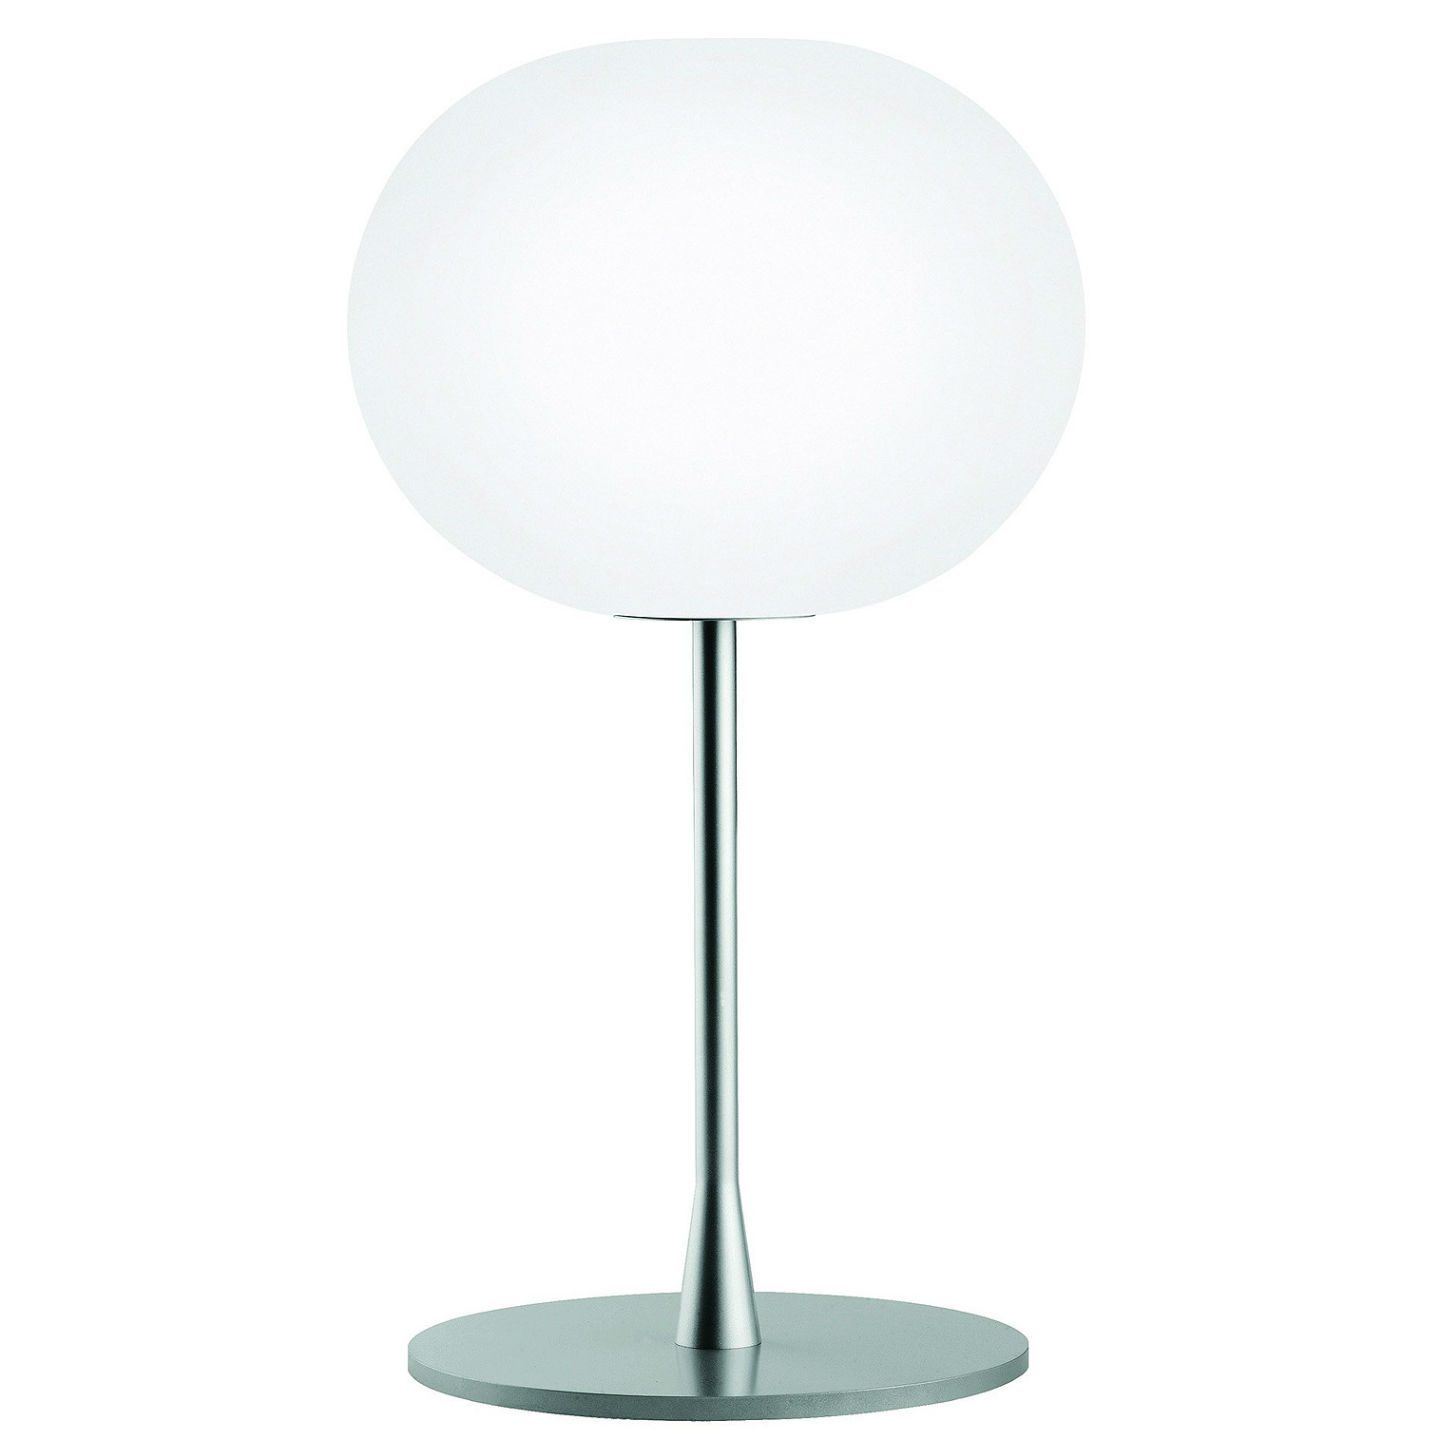 Glo Ball T2 Lampe de table 45cm E27 205W - blanc opale